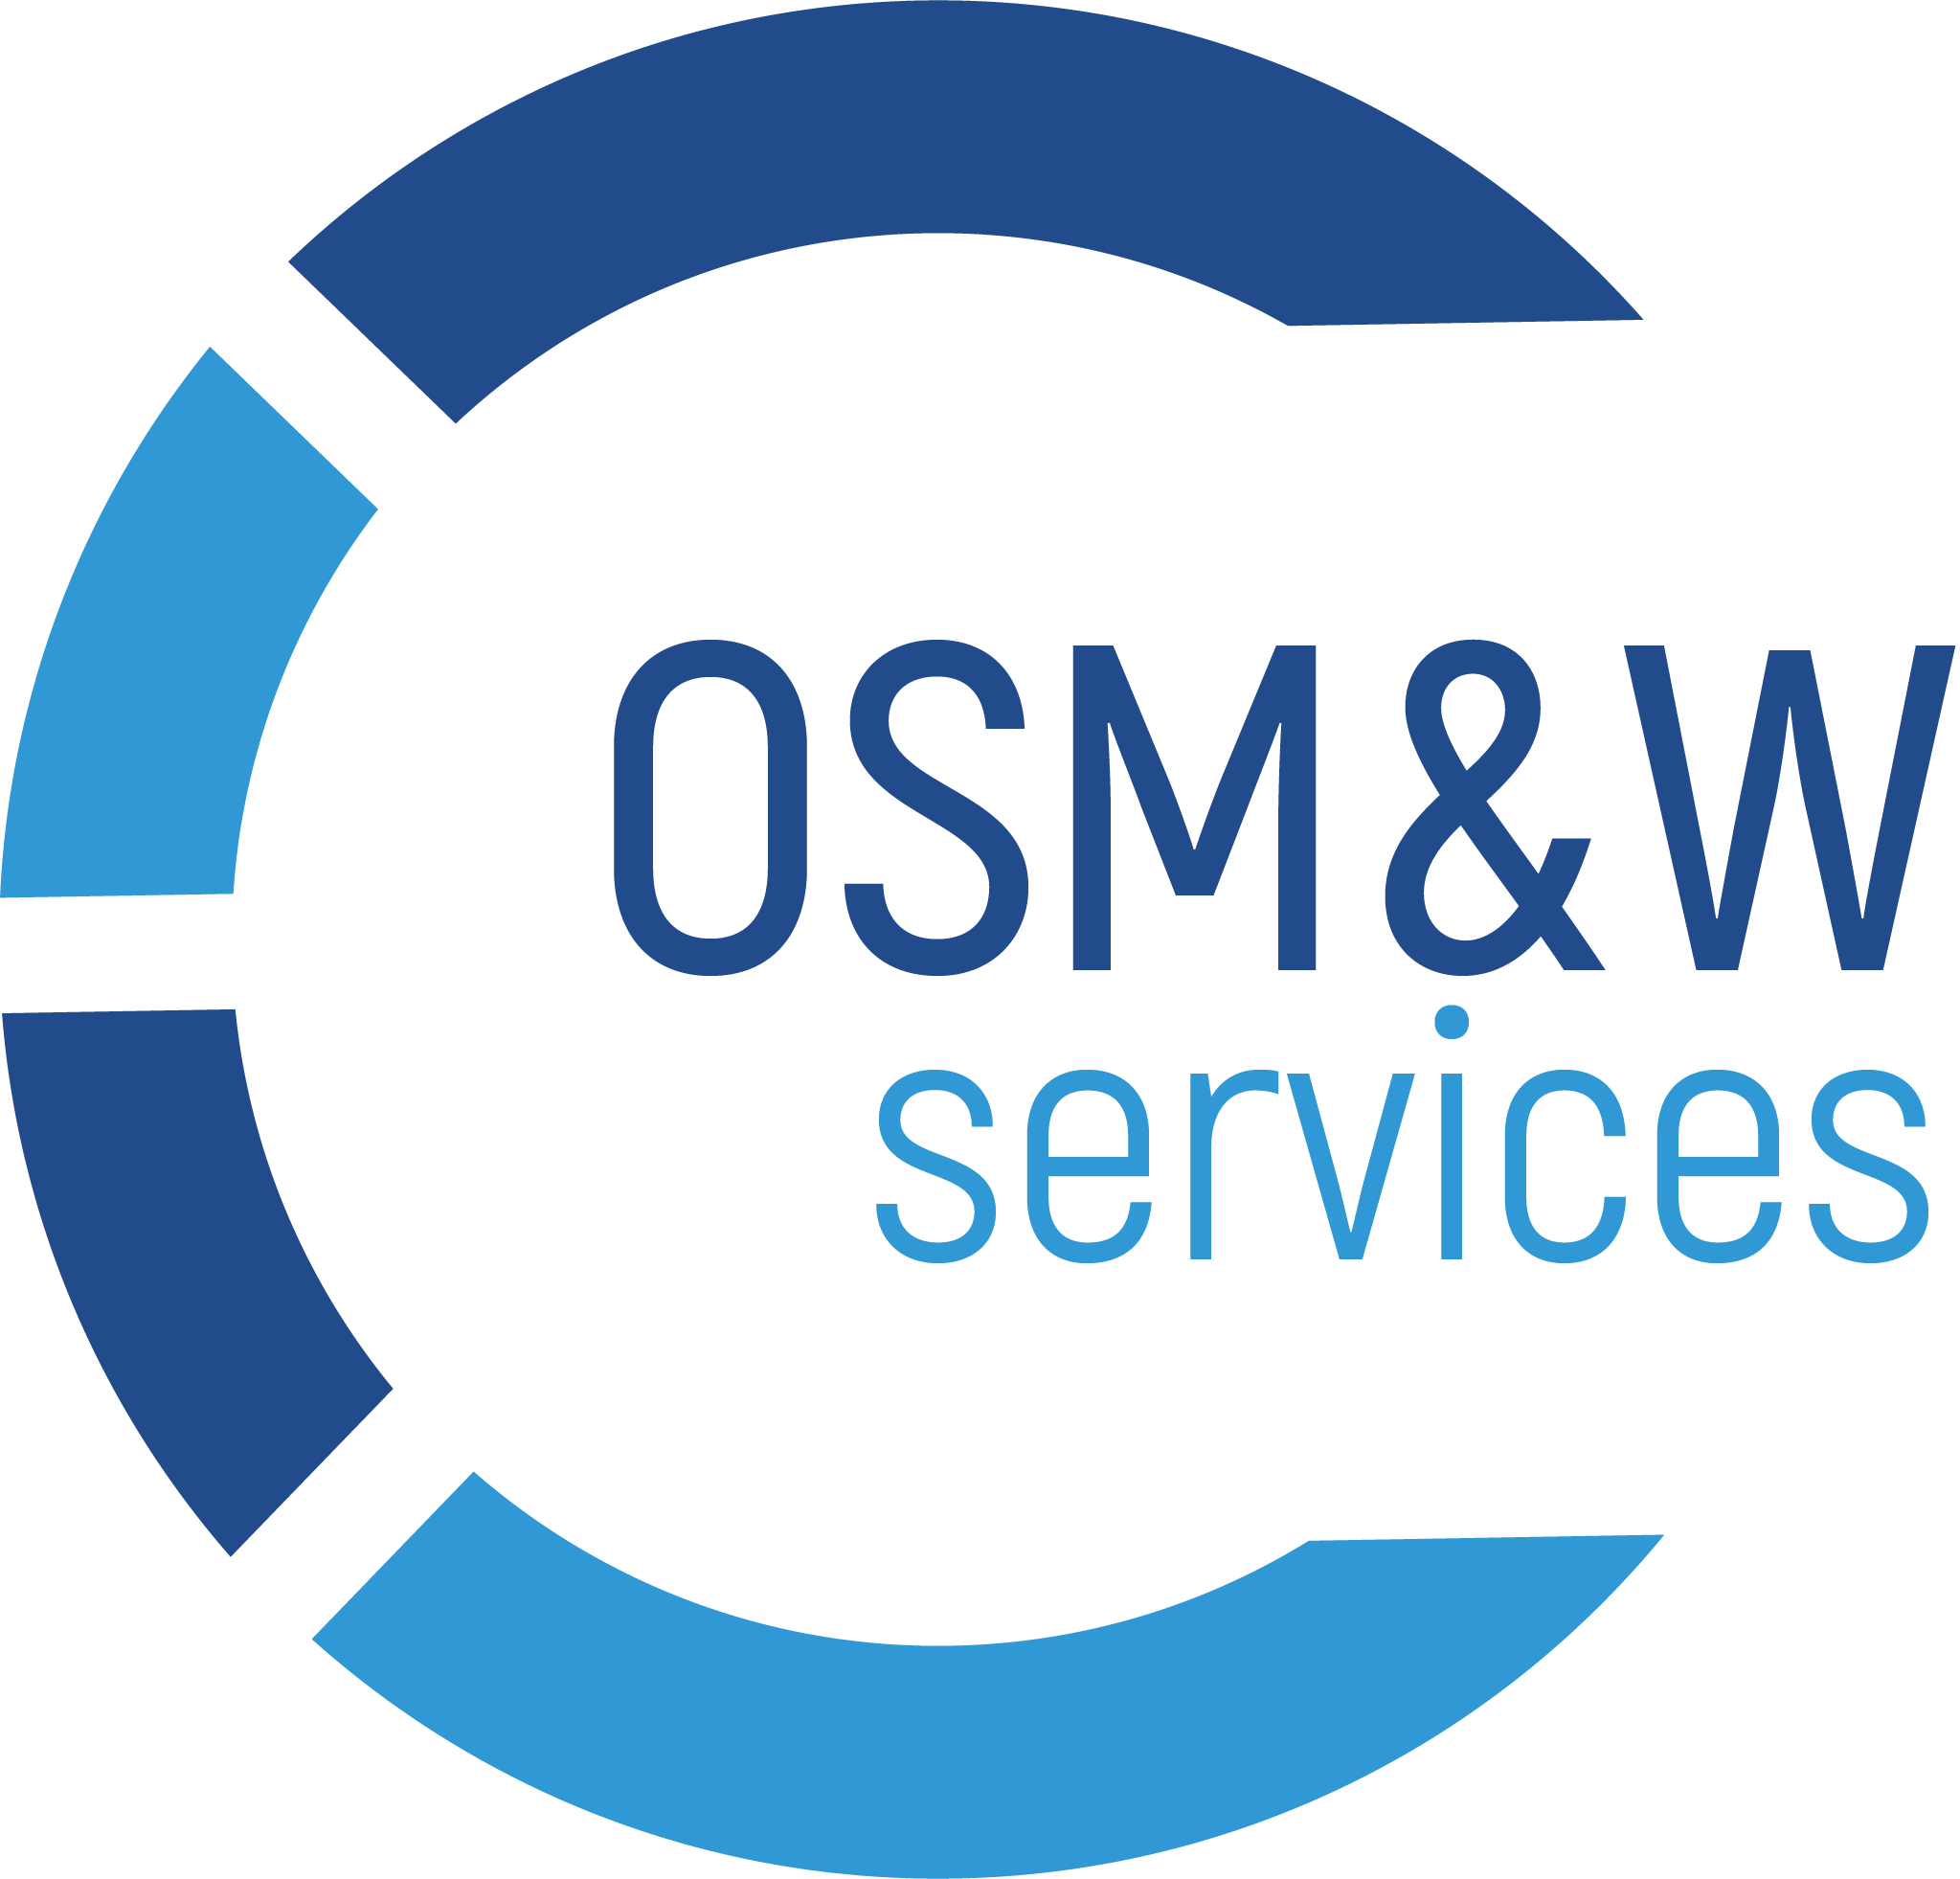 OSM&W Services